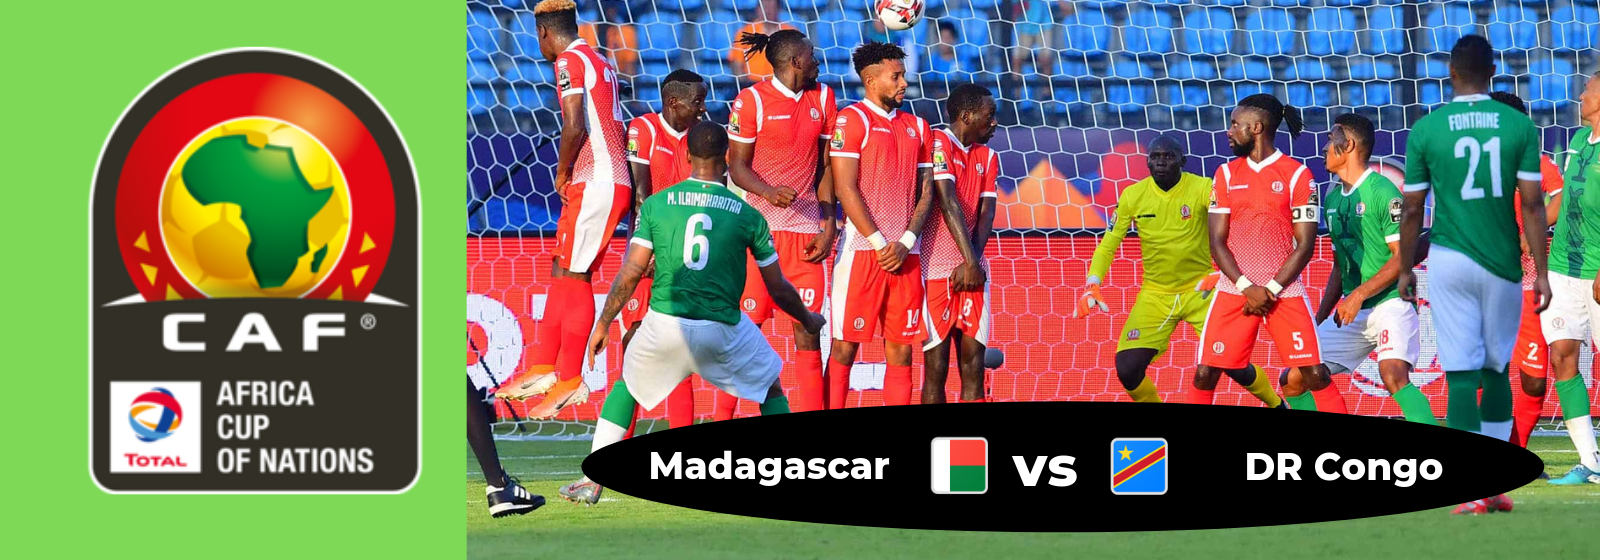 Africa Cup of Nations Madagascar Vs. DR Congo Asian Connect